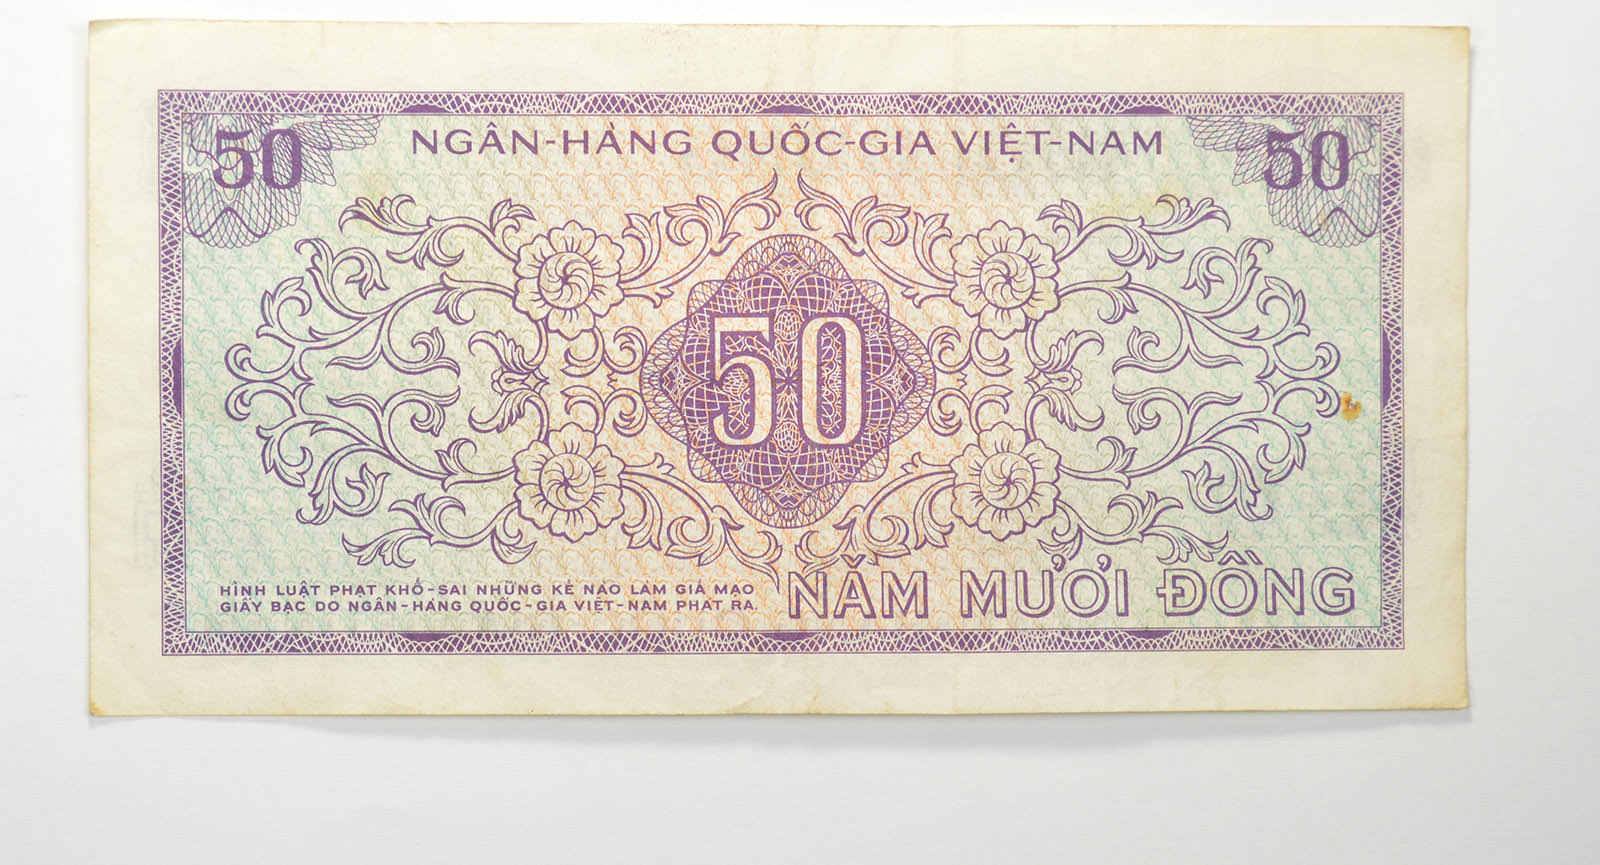 Historic Vietnam Currency Note - Great History | Property Room